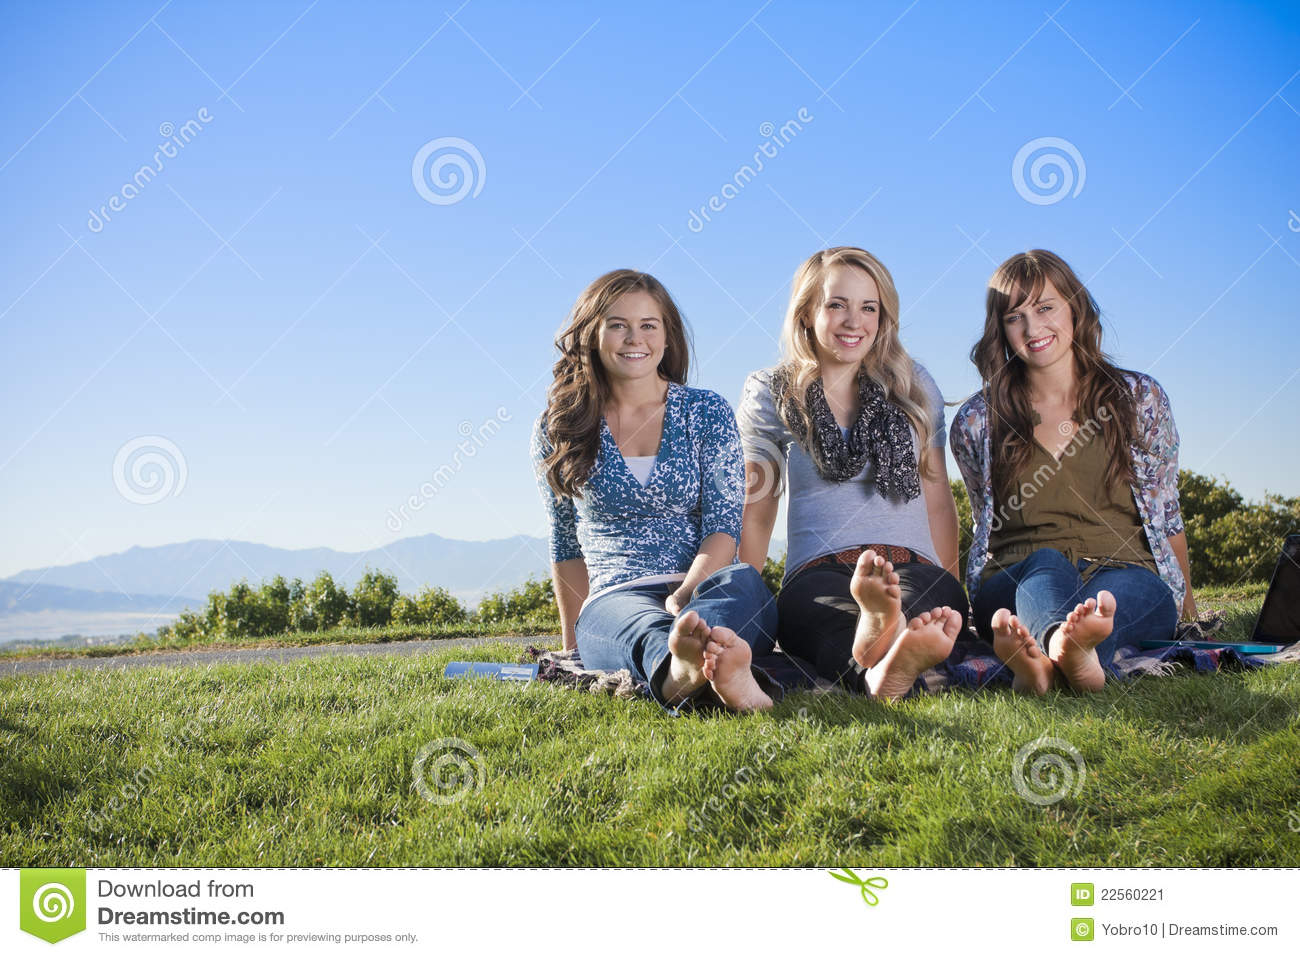 Three women relaxing in the outdoors